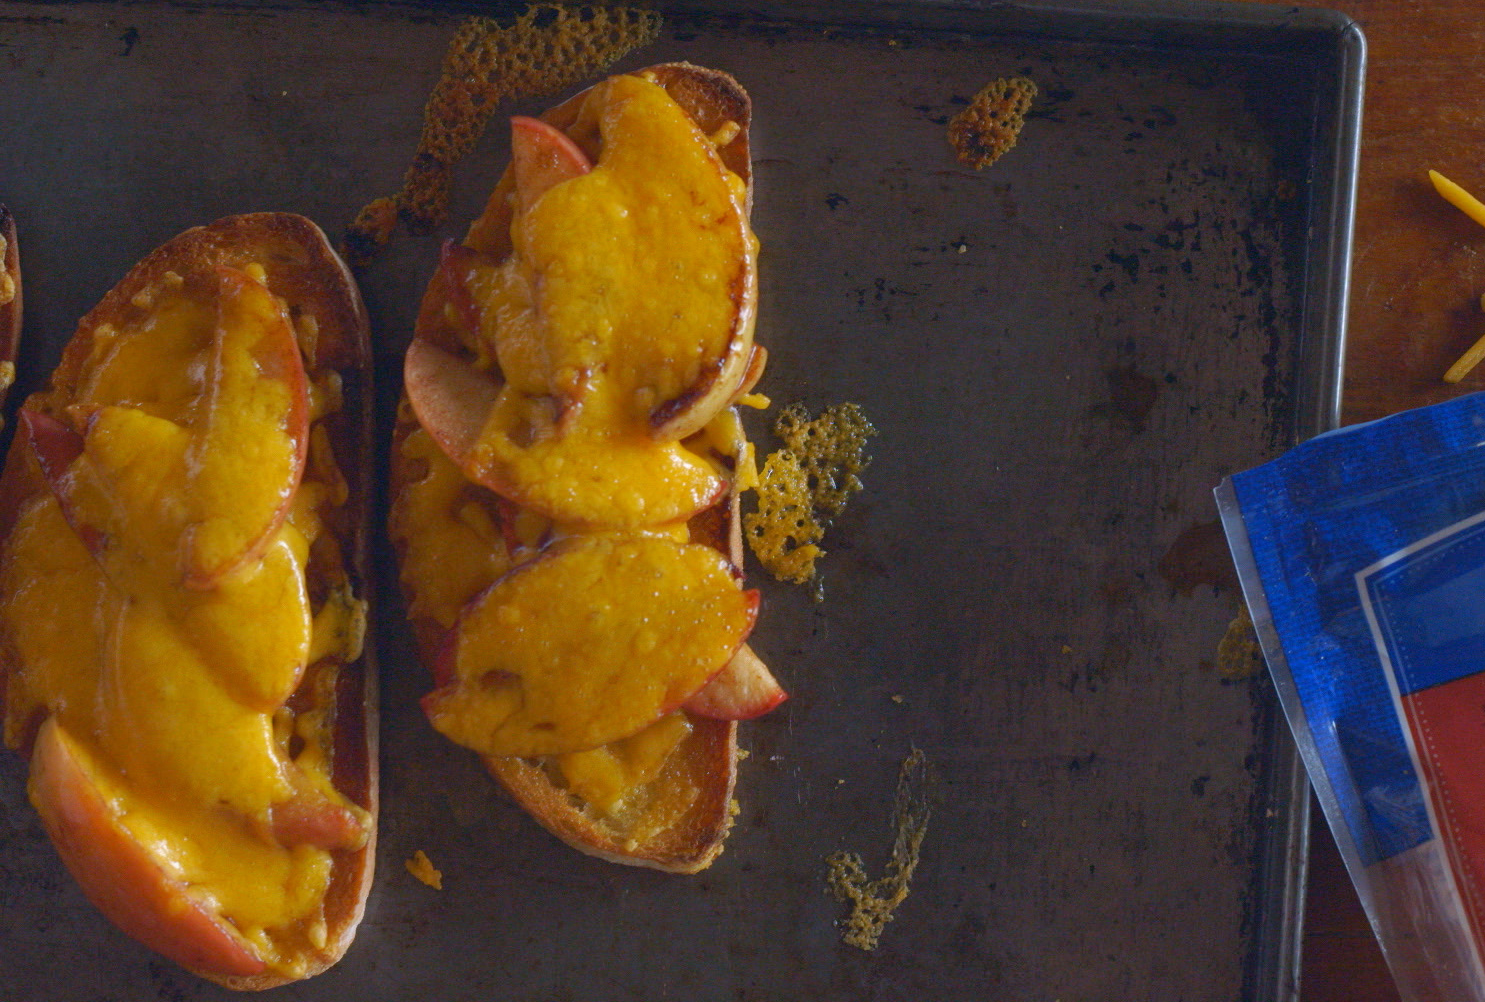 Cheddar and Apple Toast Image 1